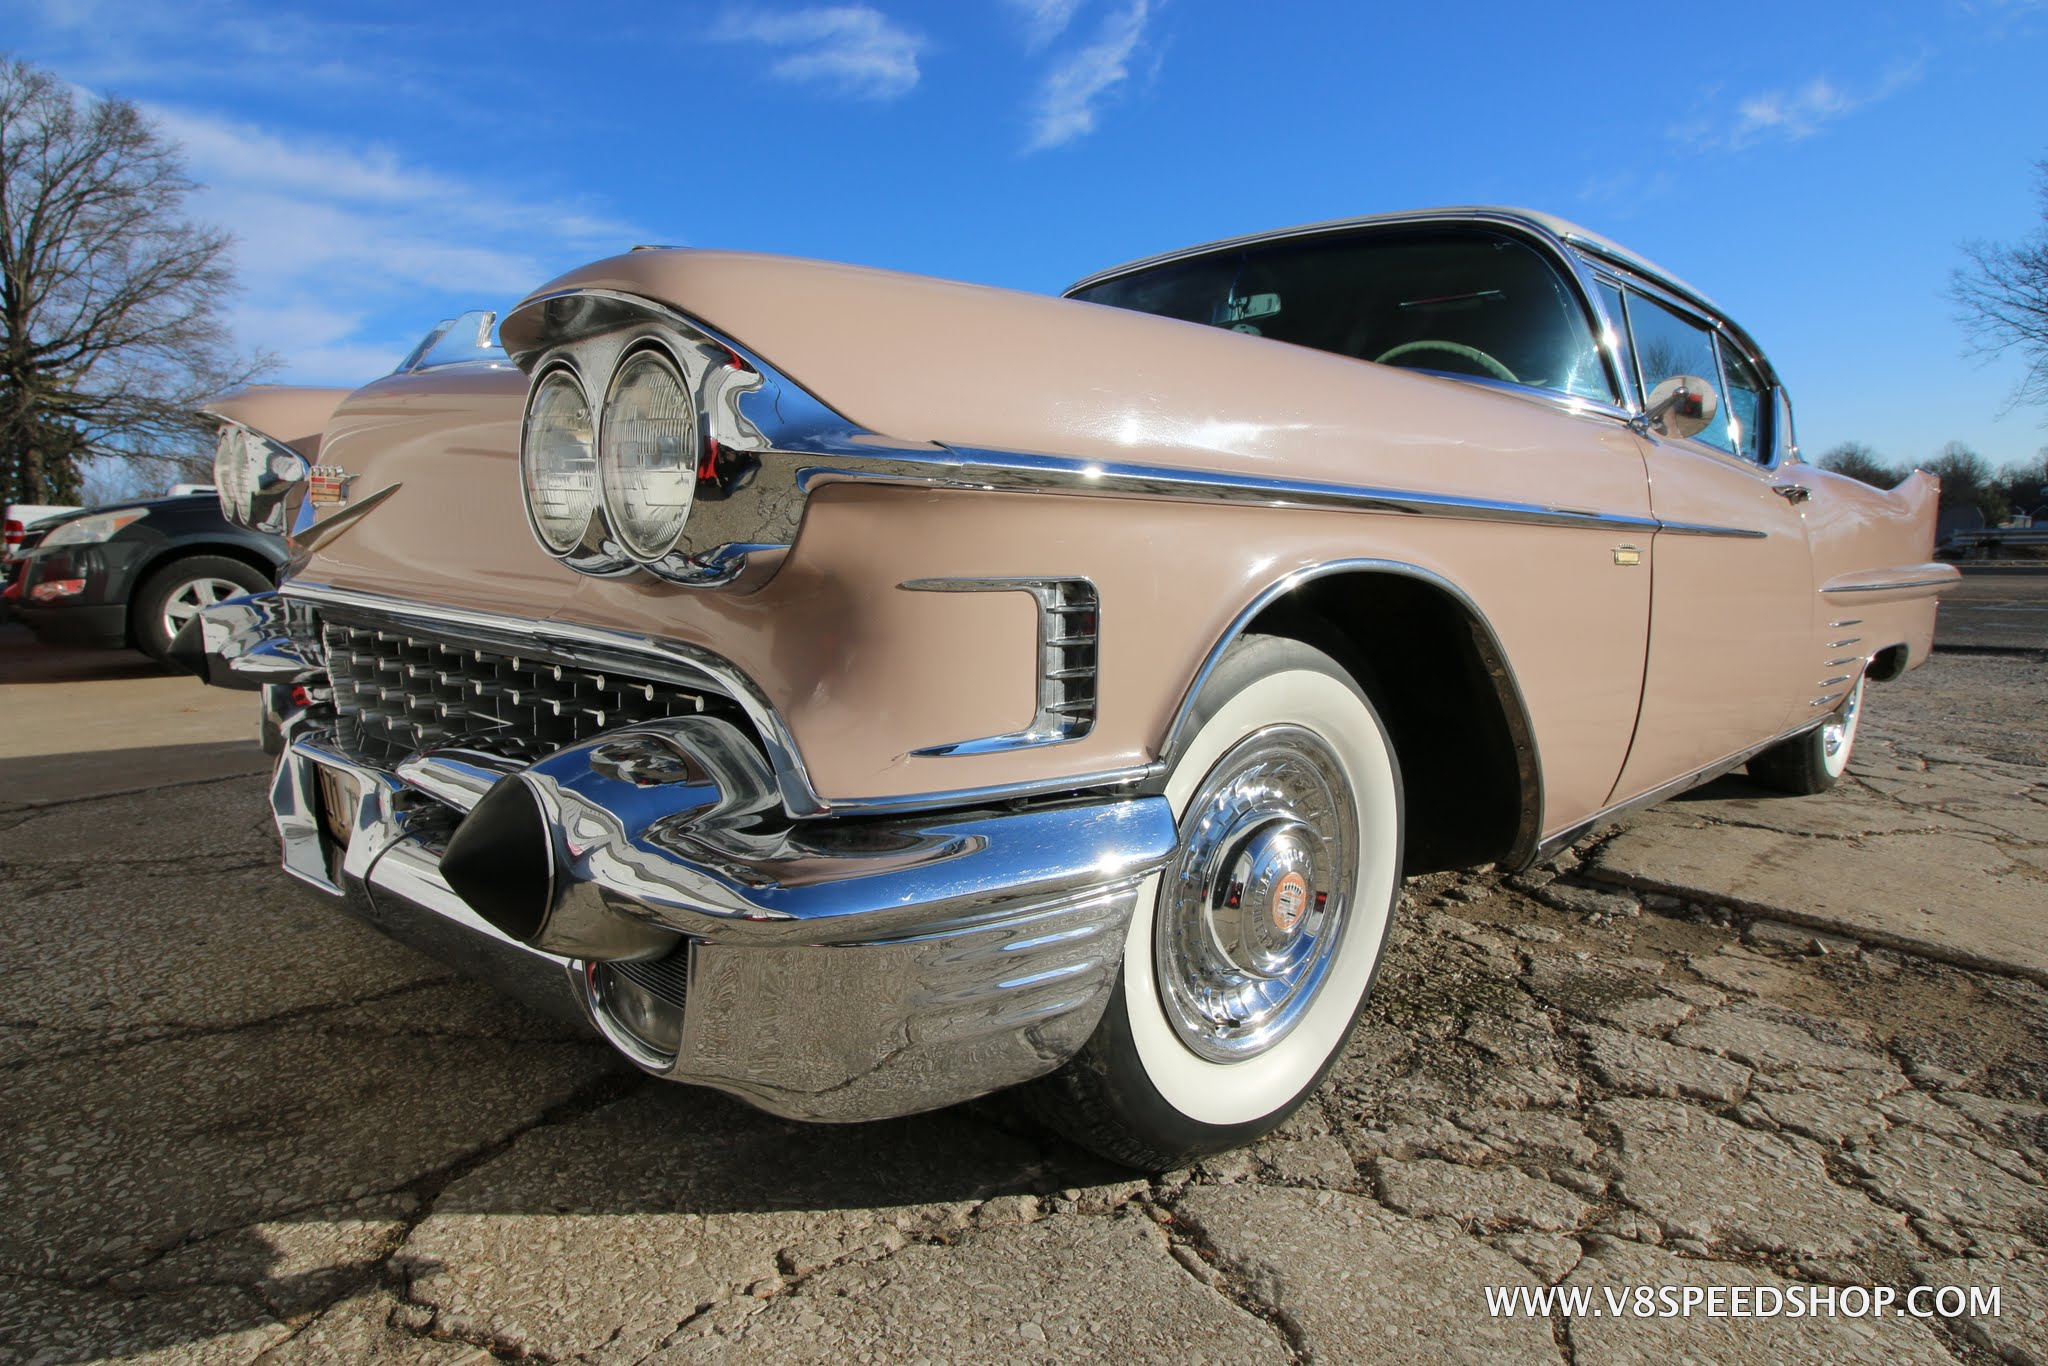 1958 Cadillac Maintenance At The V8 Speed & Resto Shop